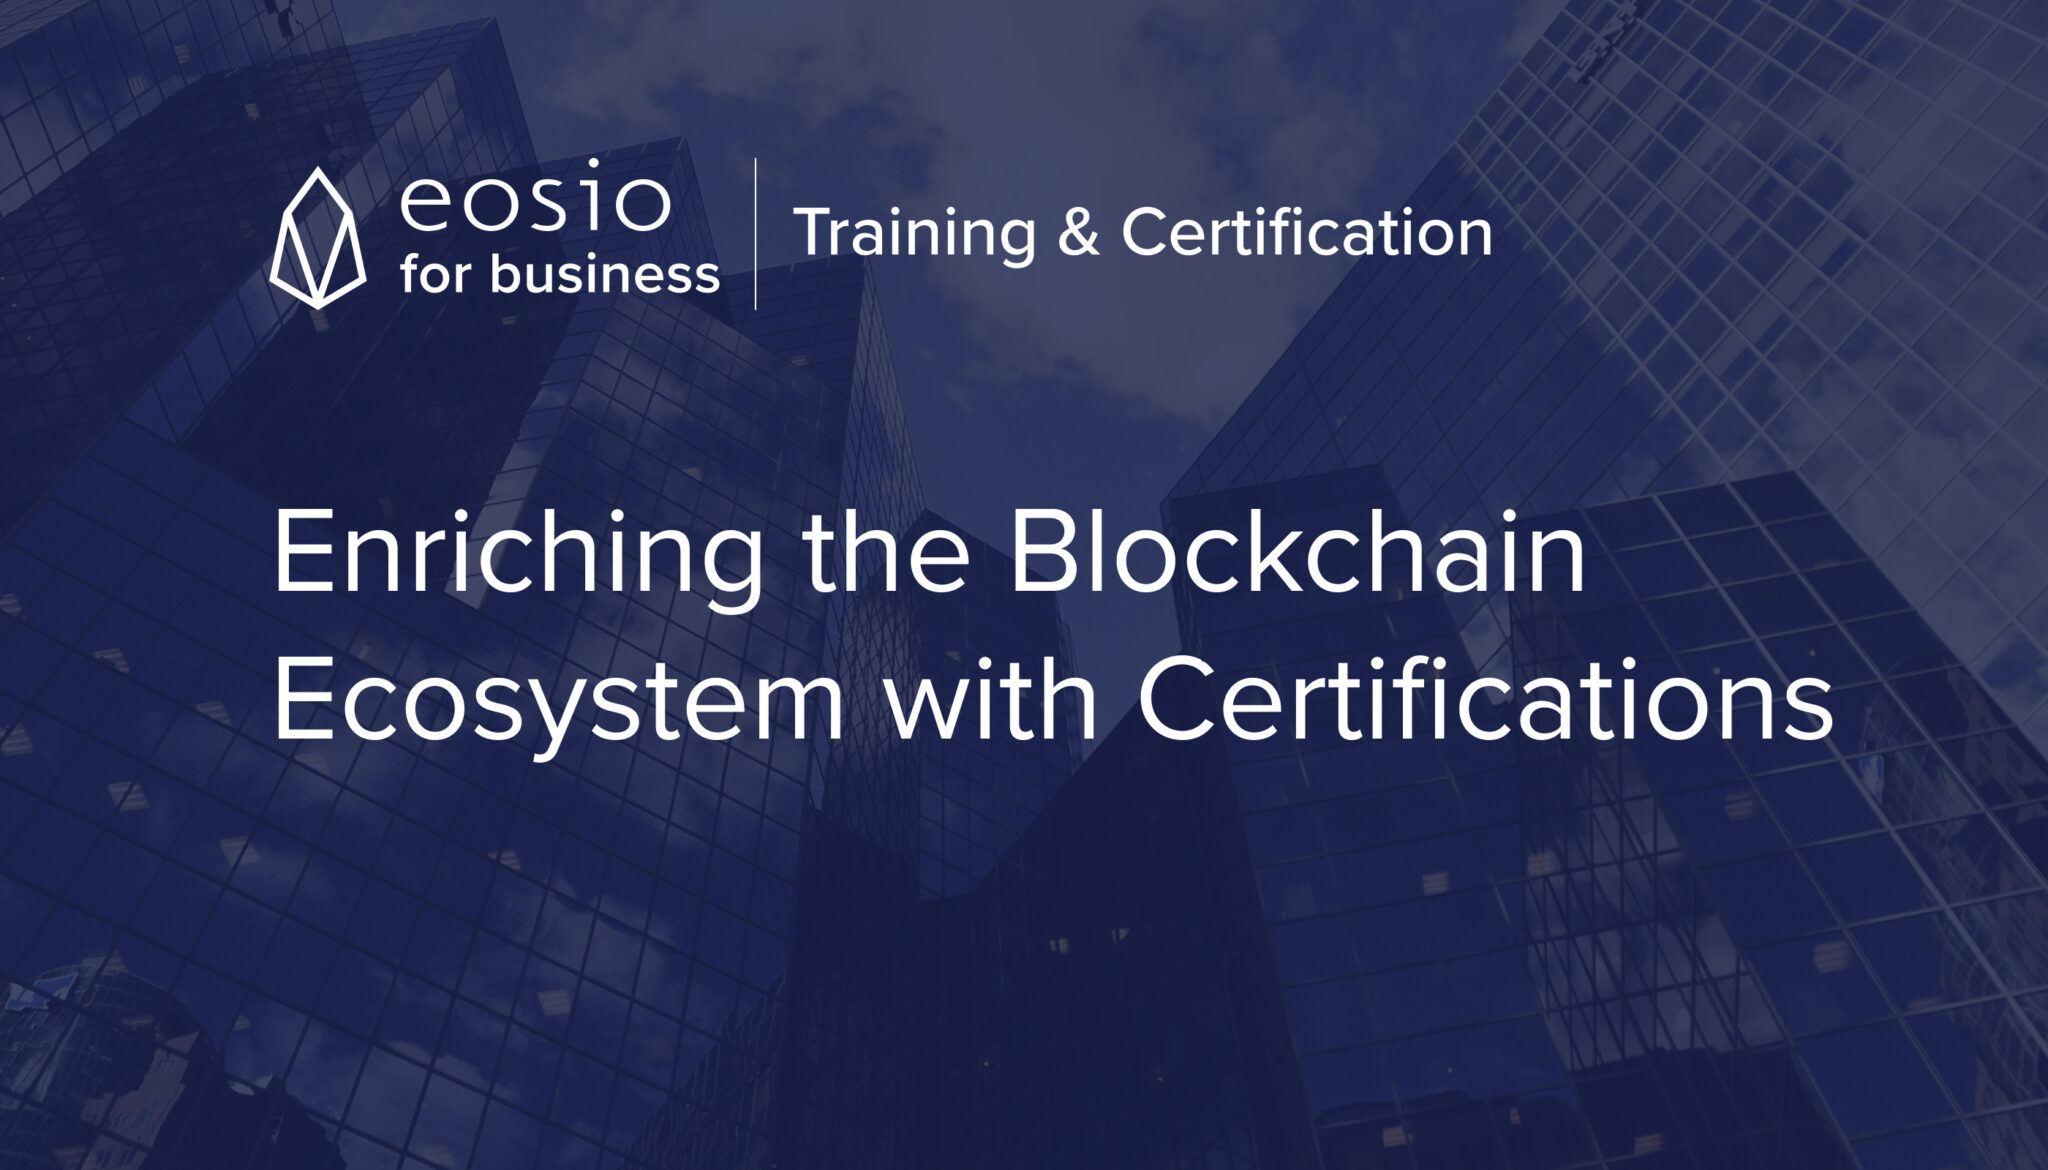 EOSIO TrainingCertification-2048x1170